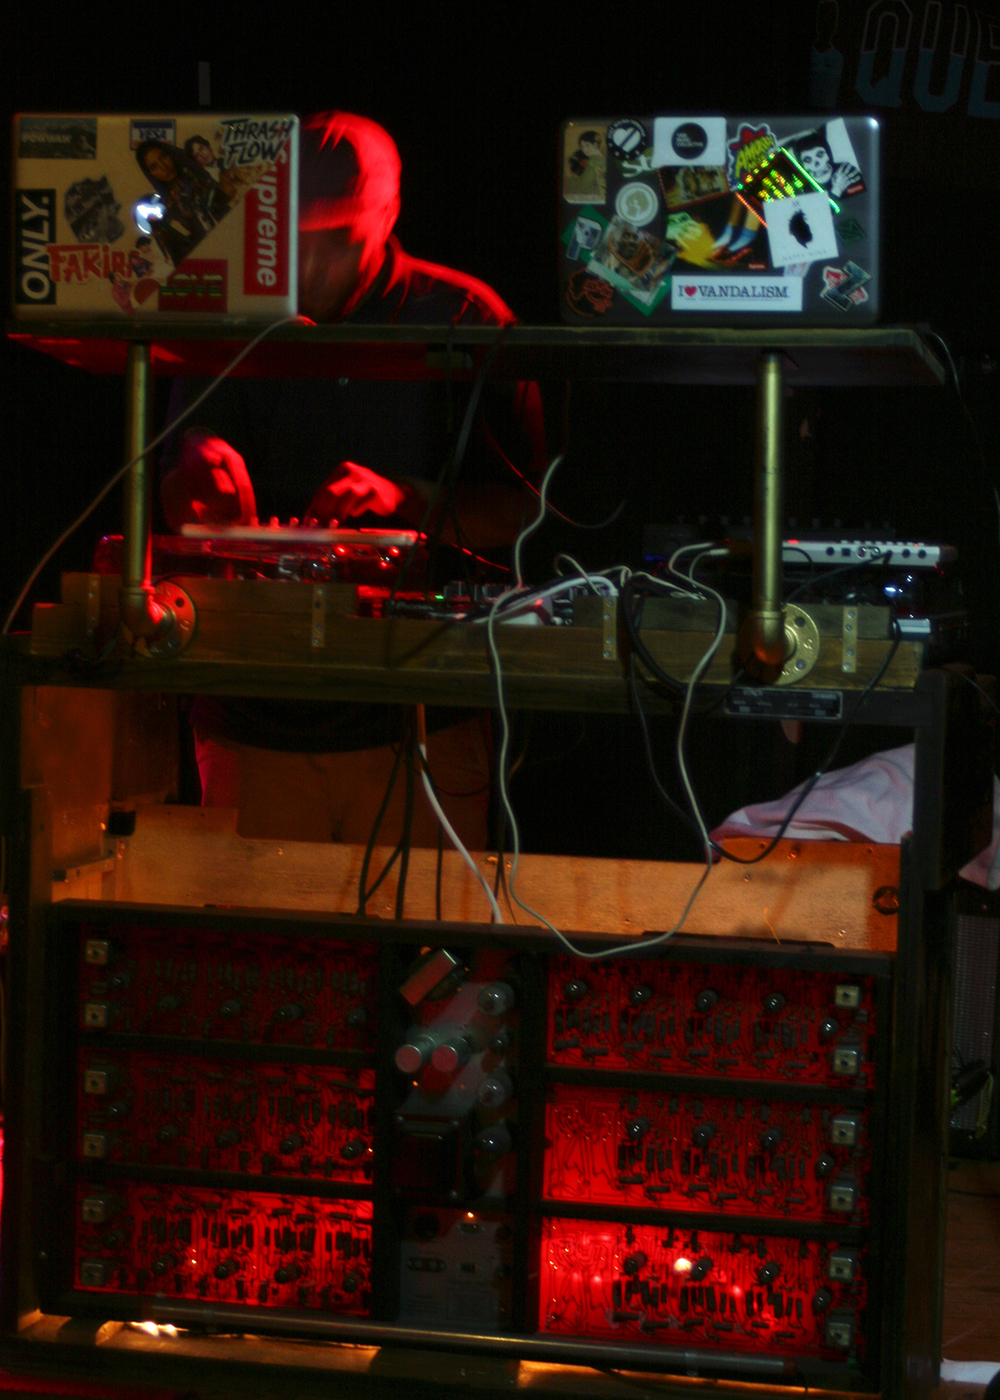 Hann 11 at The Sound Chamber IV presented by Bloodhound NY (August show - recap) Image 2